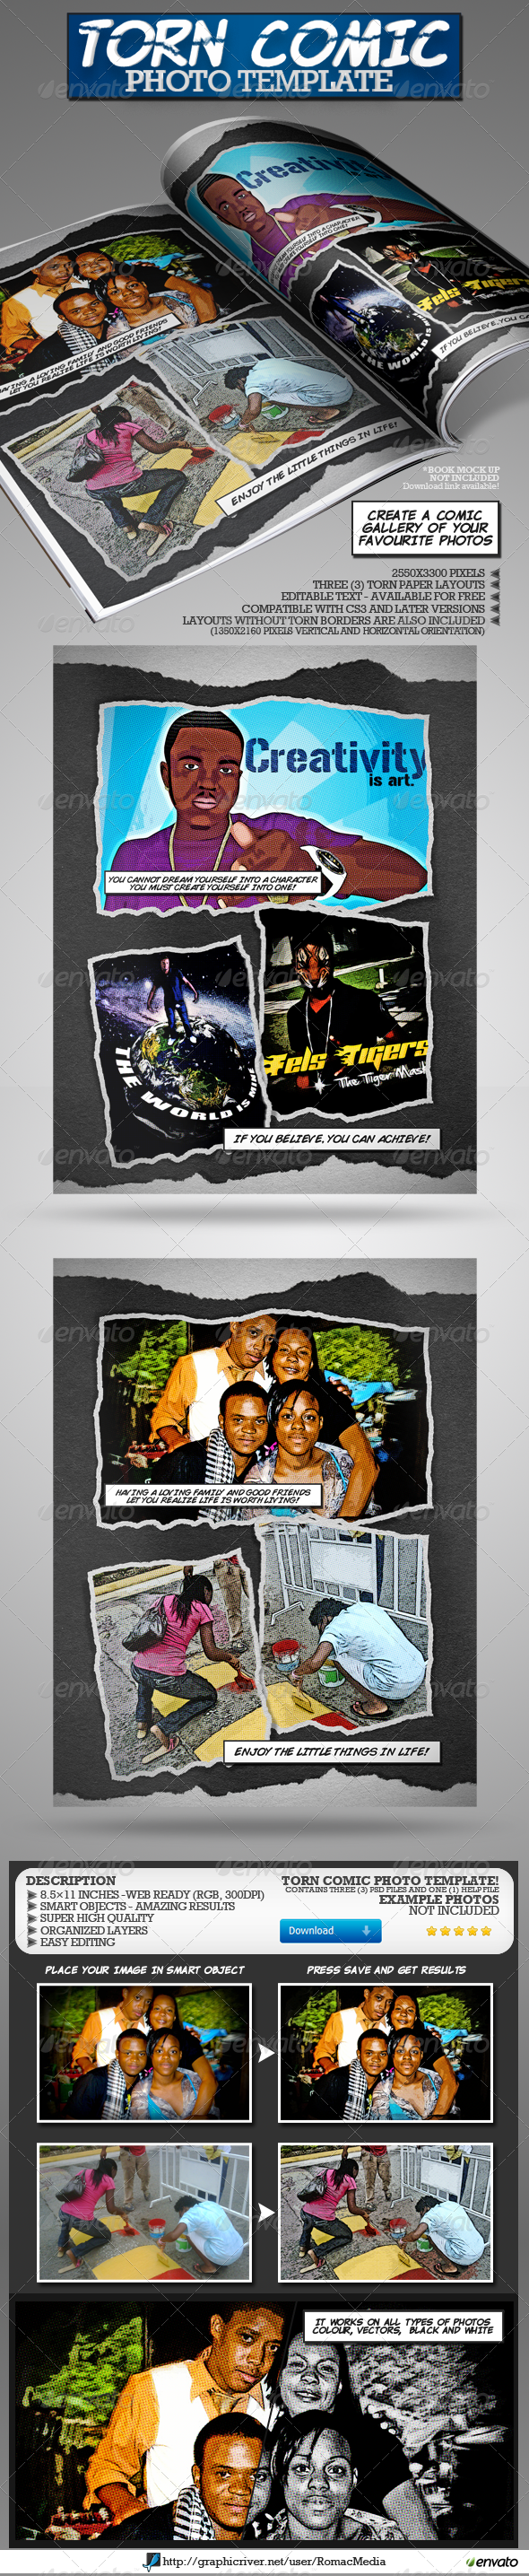 GraphicRiver Torn Comic Photo Template 4866033